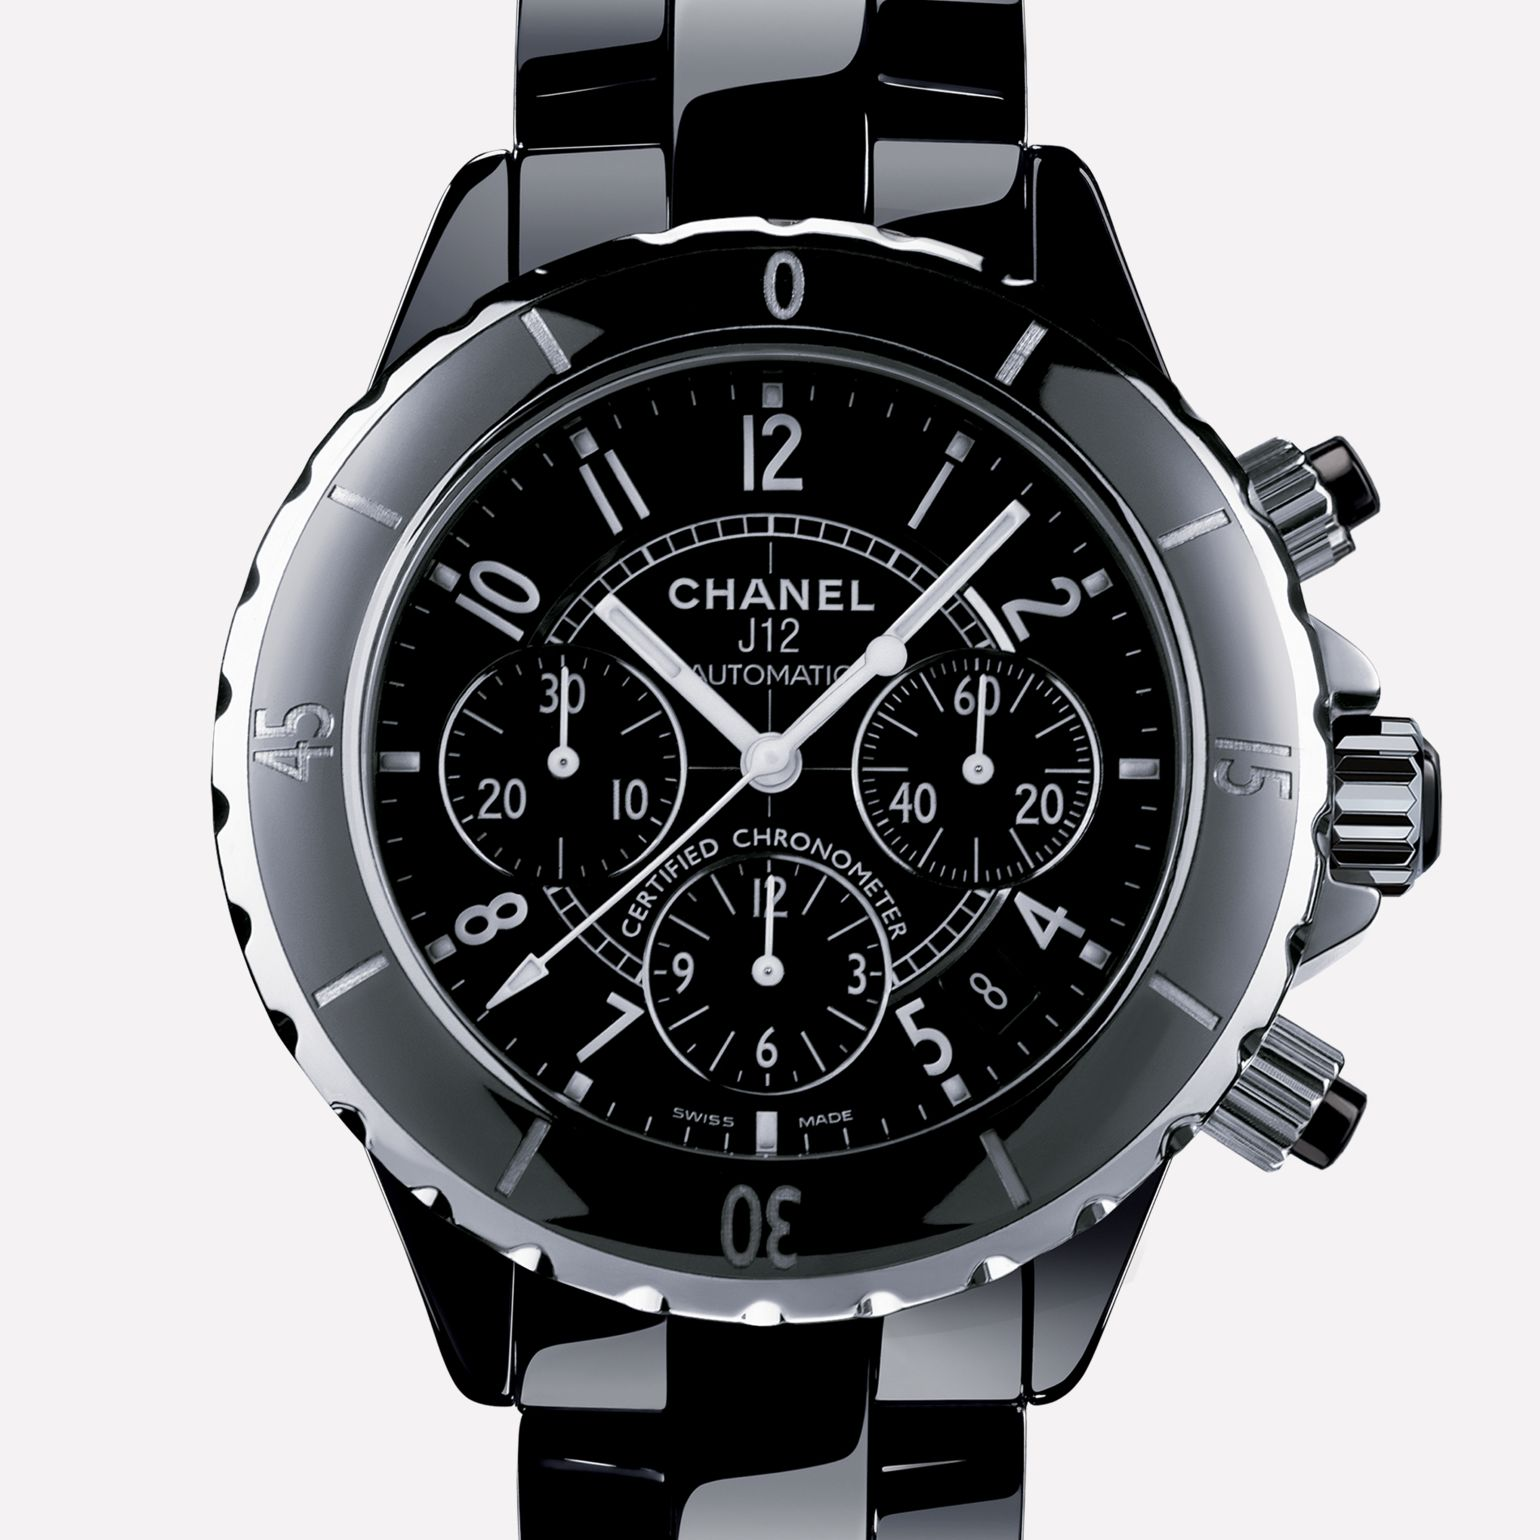 J12 CHRONOGRAPHE Watch Black ceramic and steel